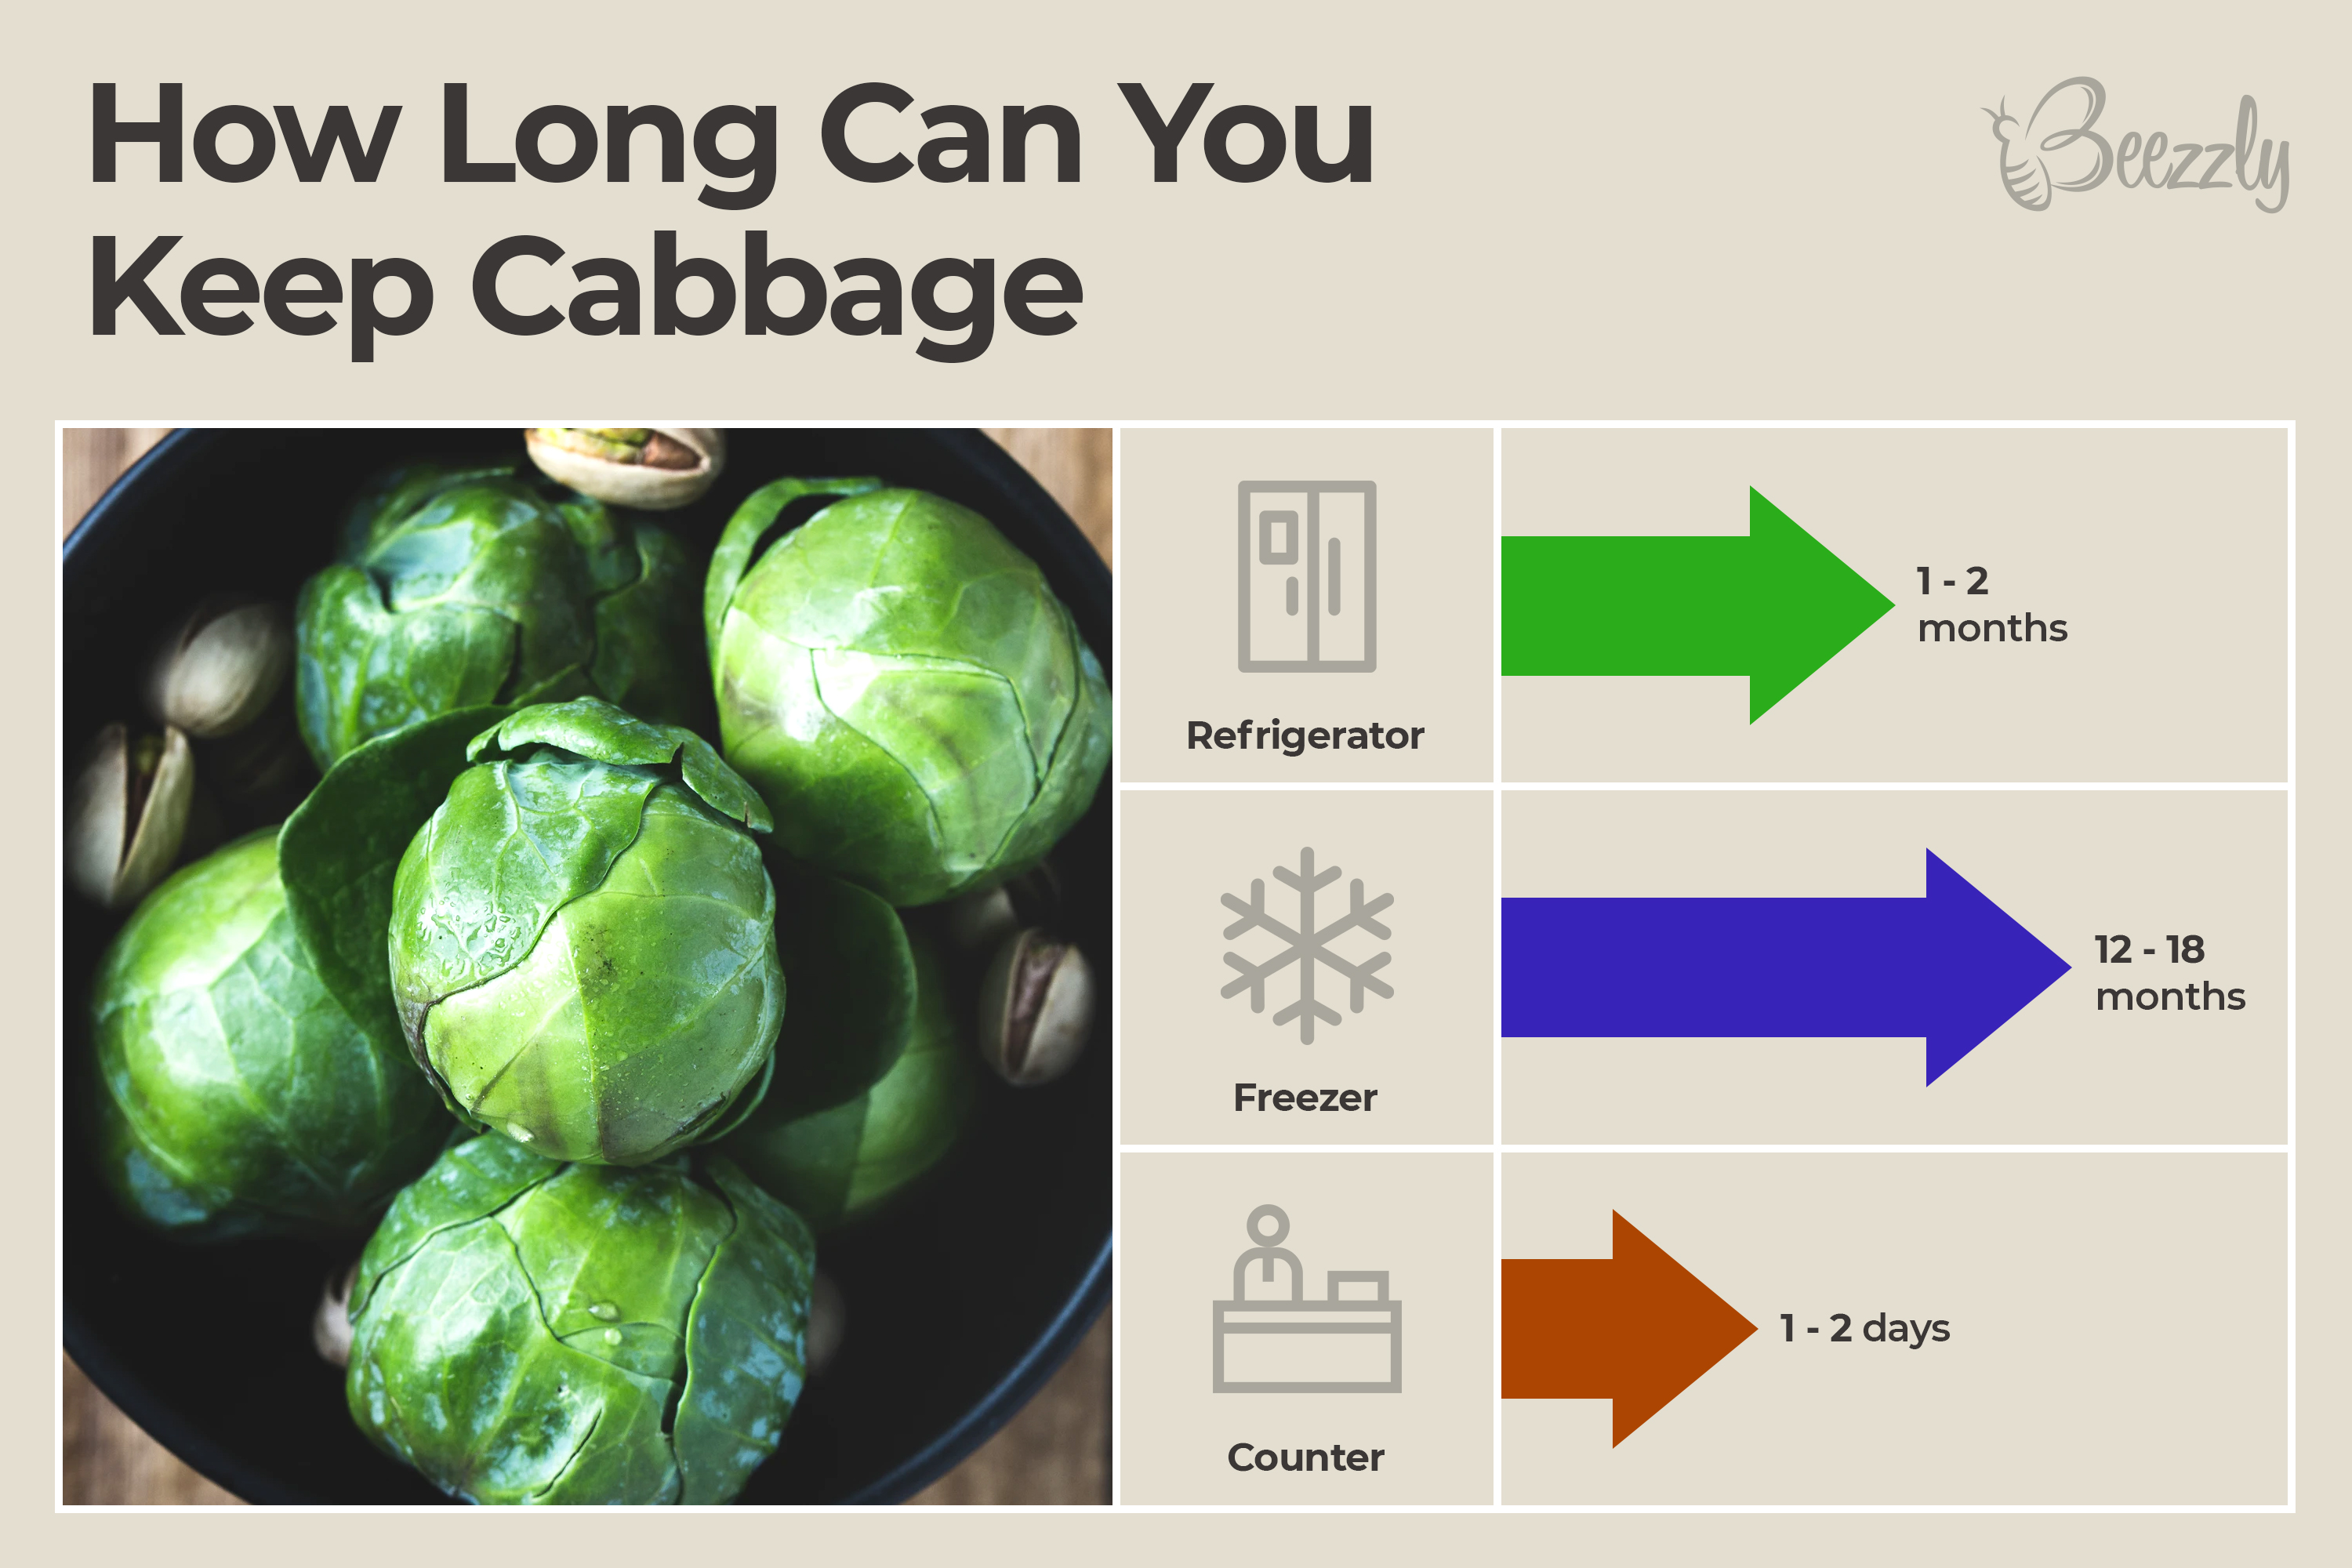 how long can you keep cabbage